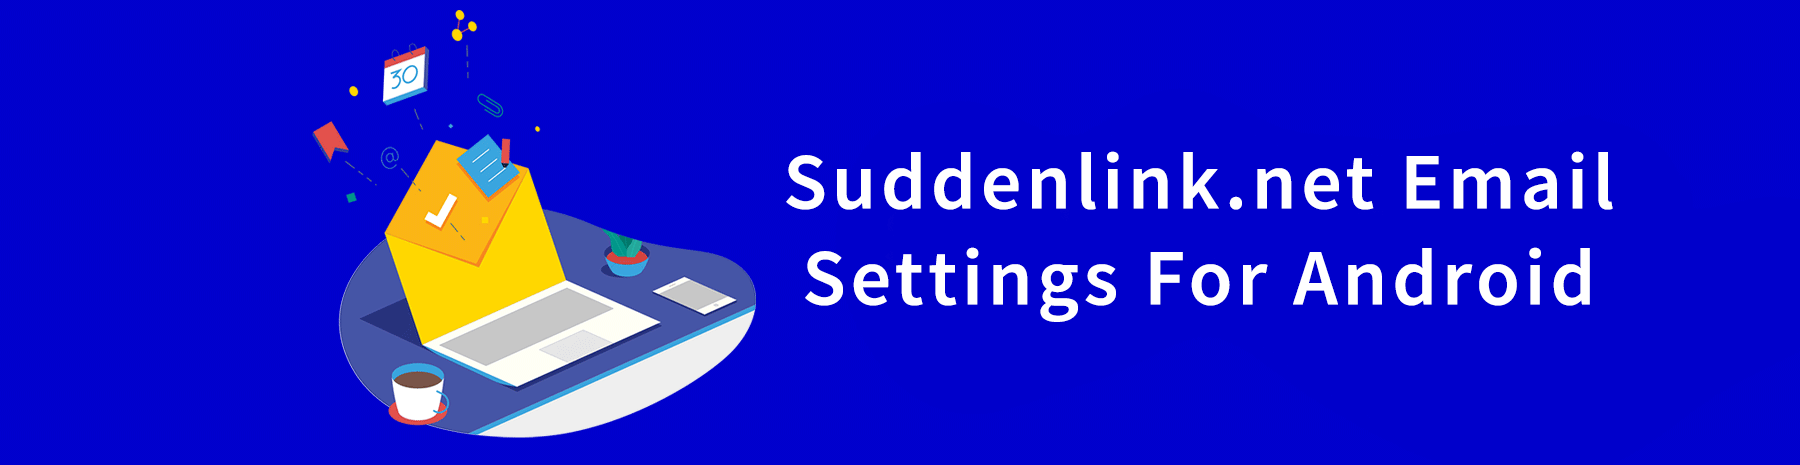 Suddenlink.net-Email-Settings-Android